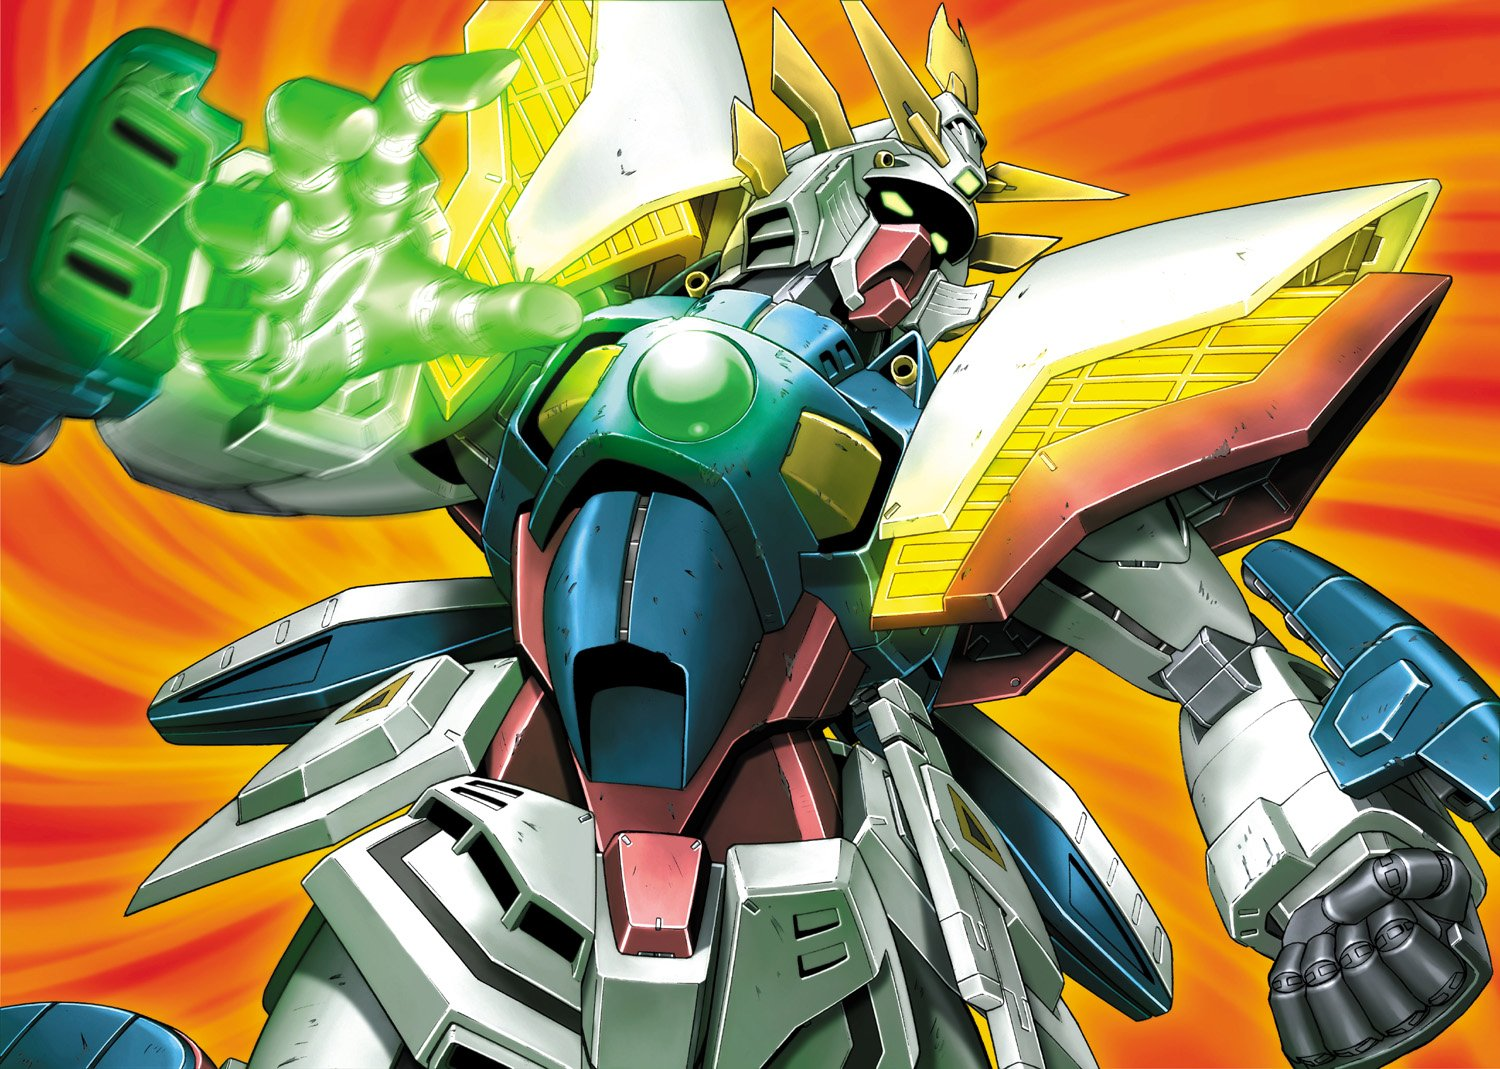 Mecha mobile fighter g gundam snip wallpaper 1500x1069 78480 1500x1069